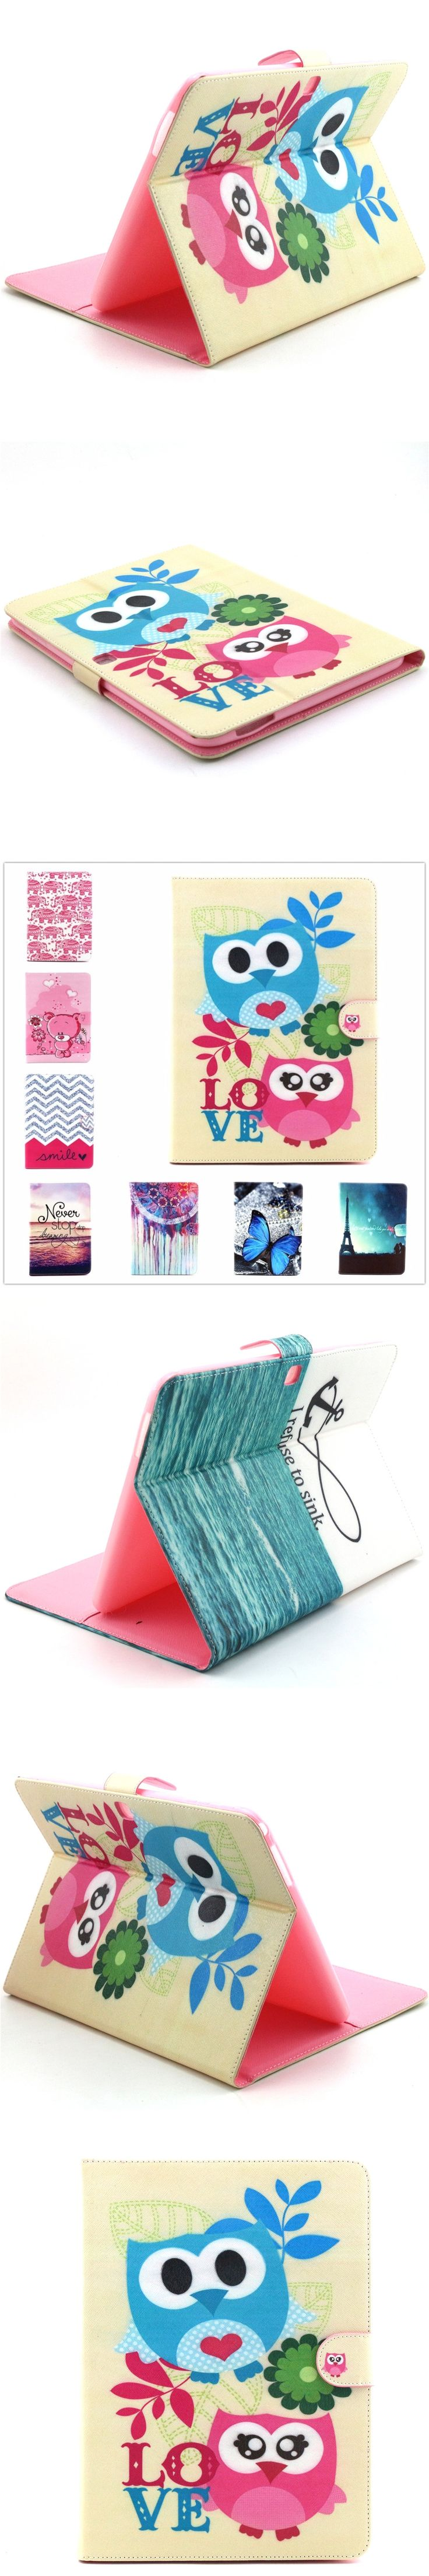 Painting PU Leather Stand Case with Card Slot for Samsung Galaxy Tab A 8.0 T350 T351 T355 sm-t355 P350 8'' Tablet SmartCover